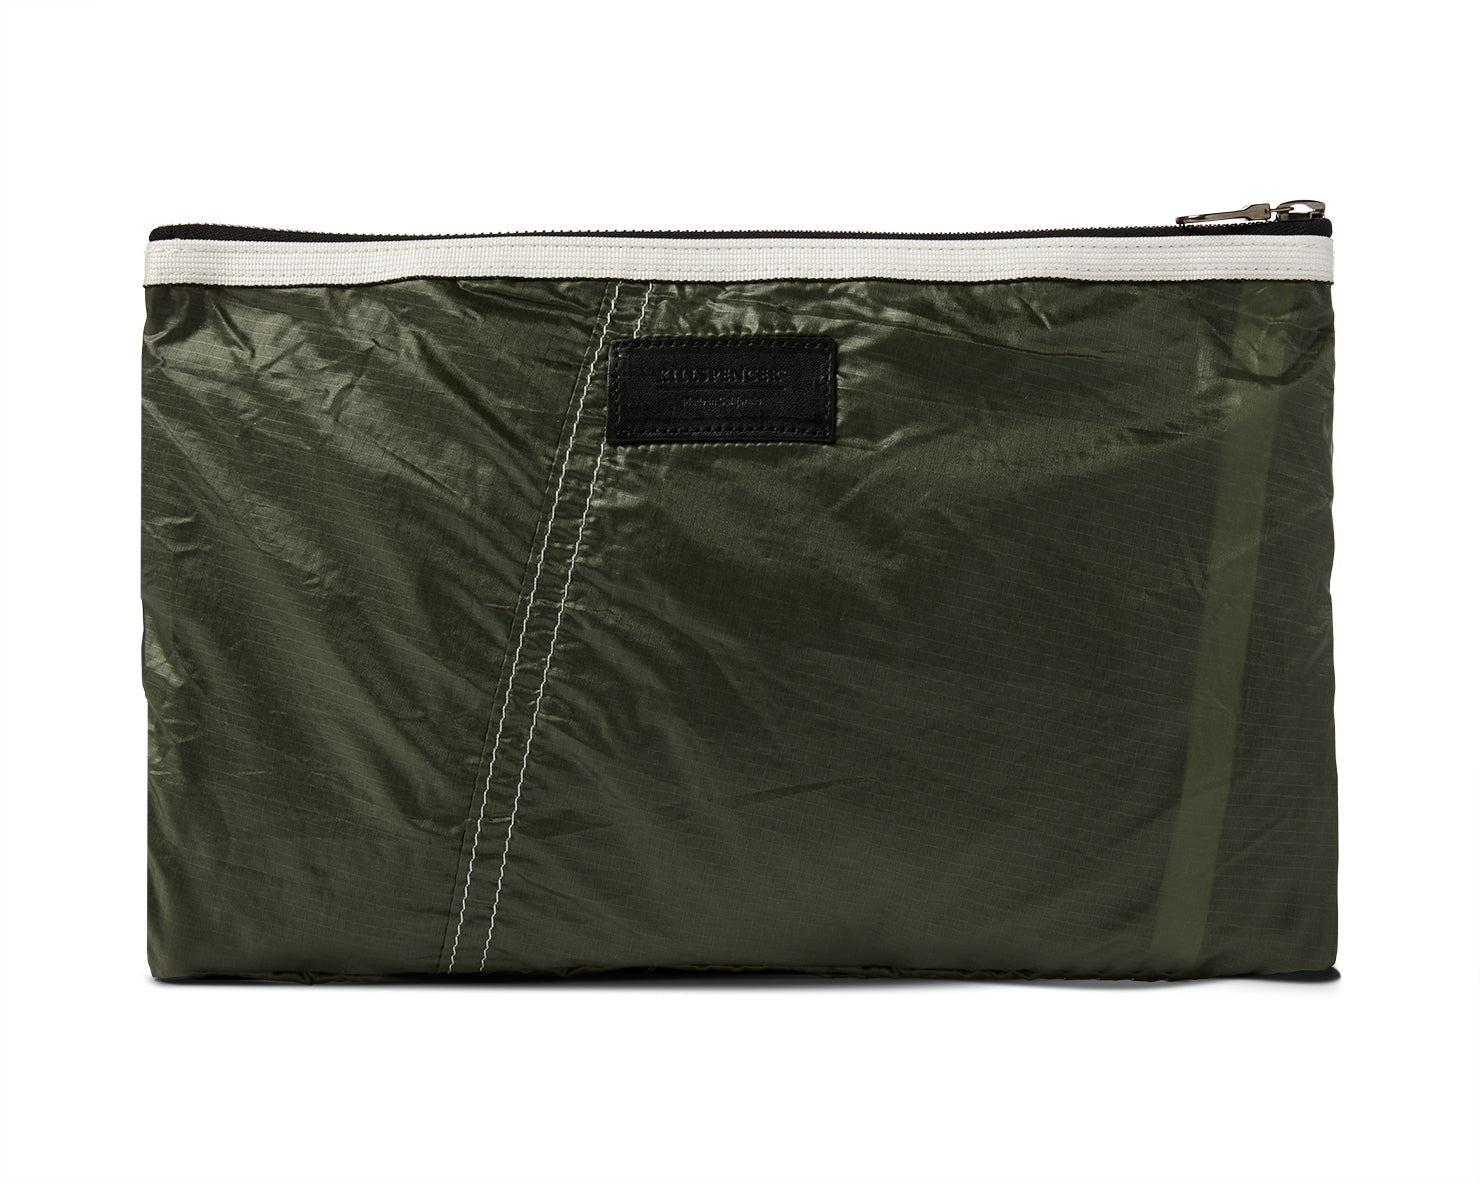 PARACHUTE ZIPPERED POUCH | KILLSPENCER® - Olive Drab Parachute